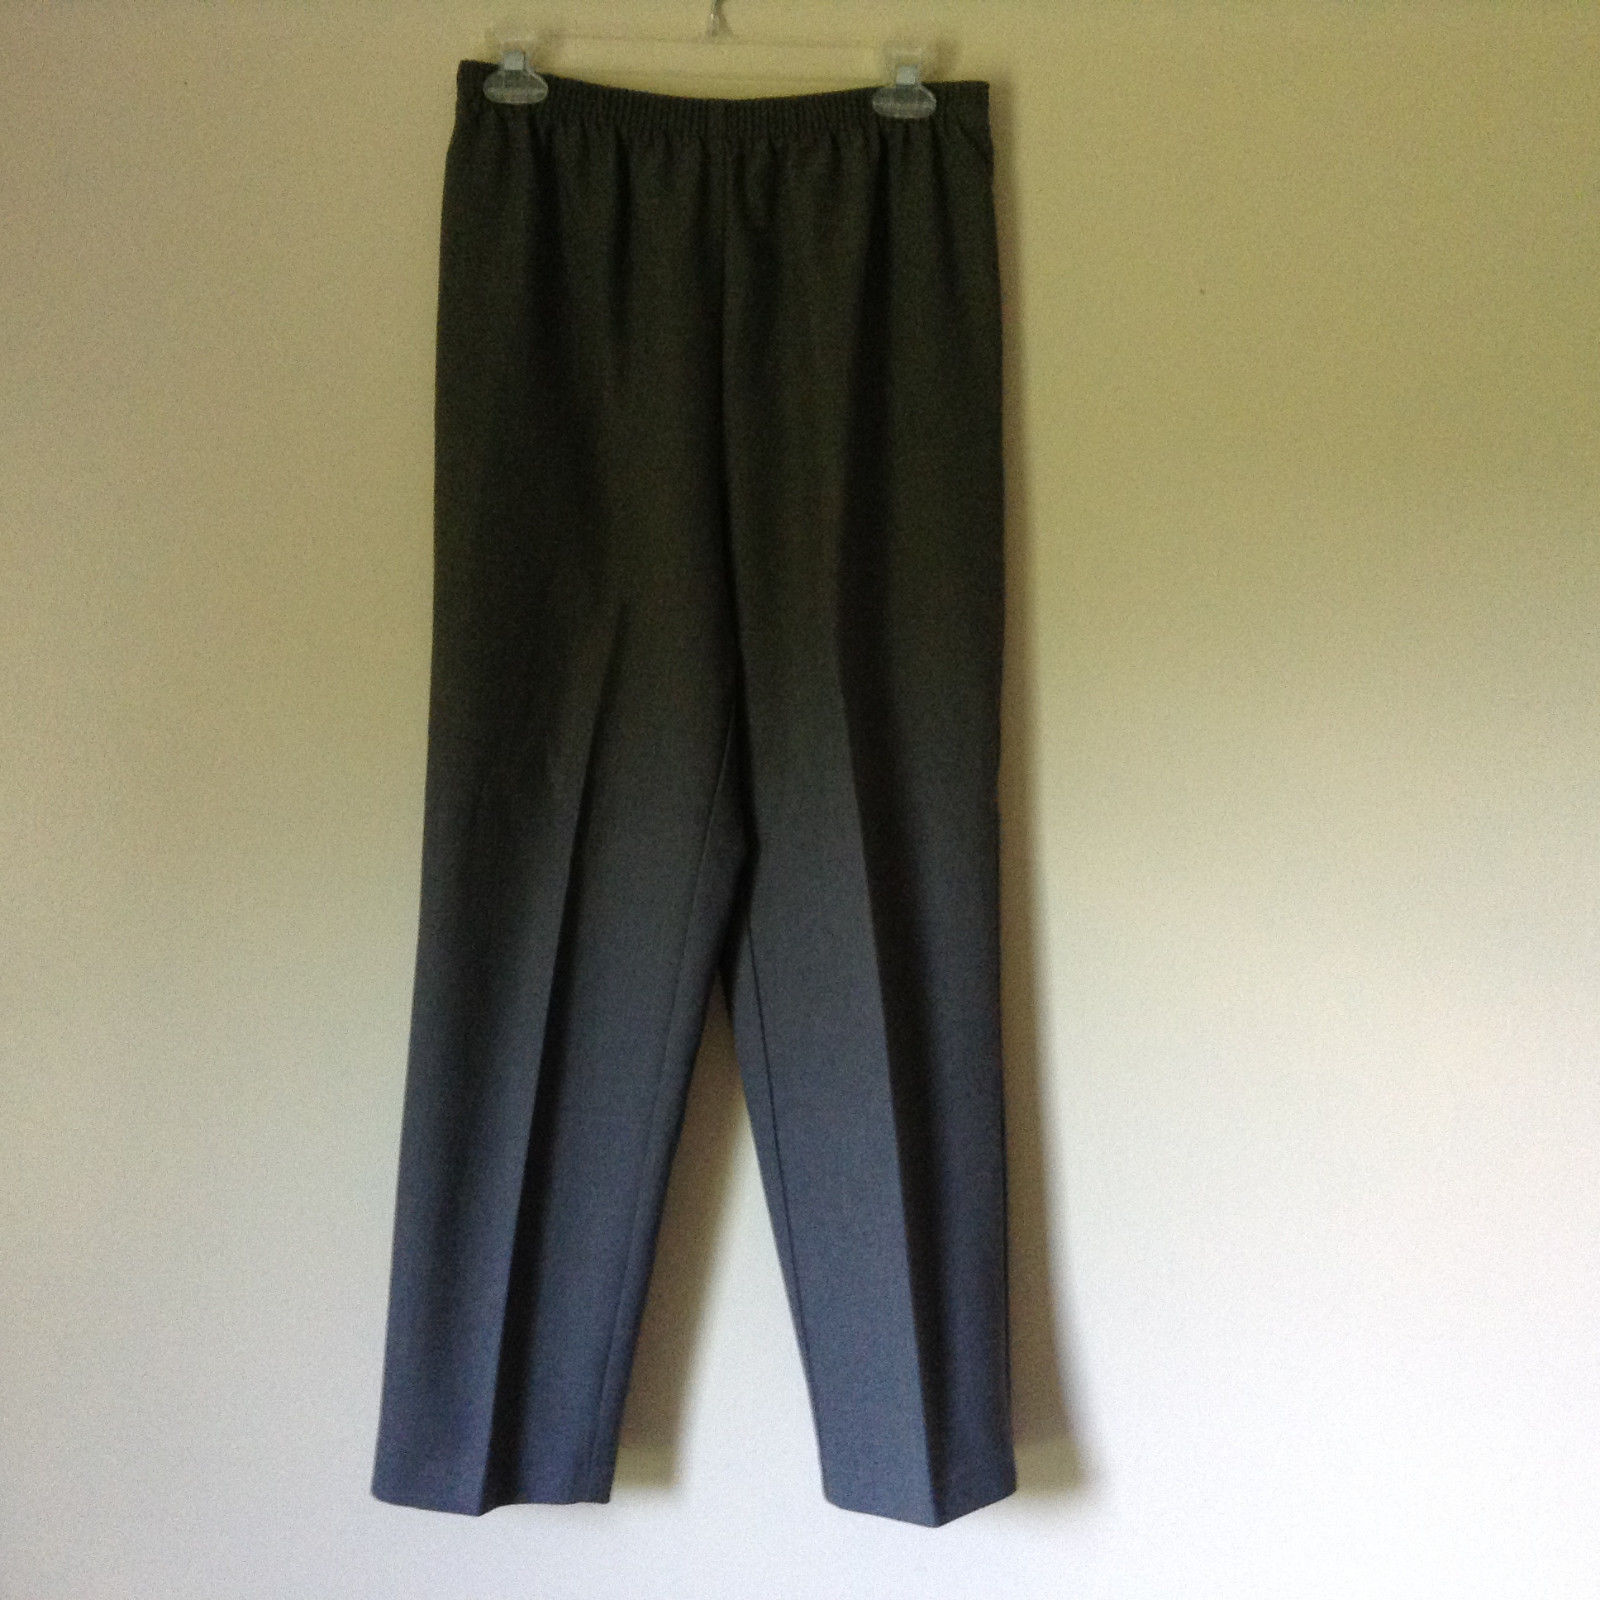 Monterey Canyon Petite Gray Stretchy Waist Pants 100 Percent Polyester Size 10P